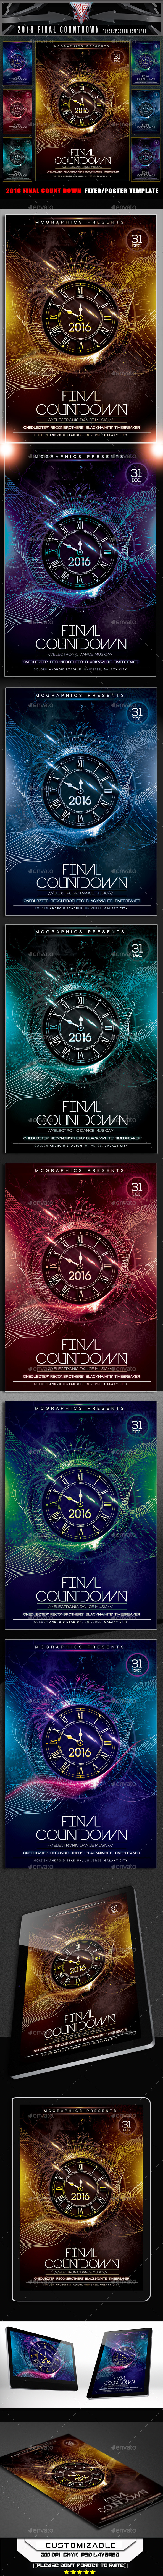 2016 Final Count Down Flyer Template - Clubs & Parties Events